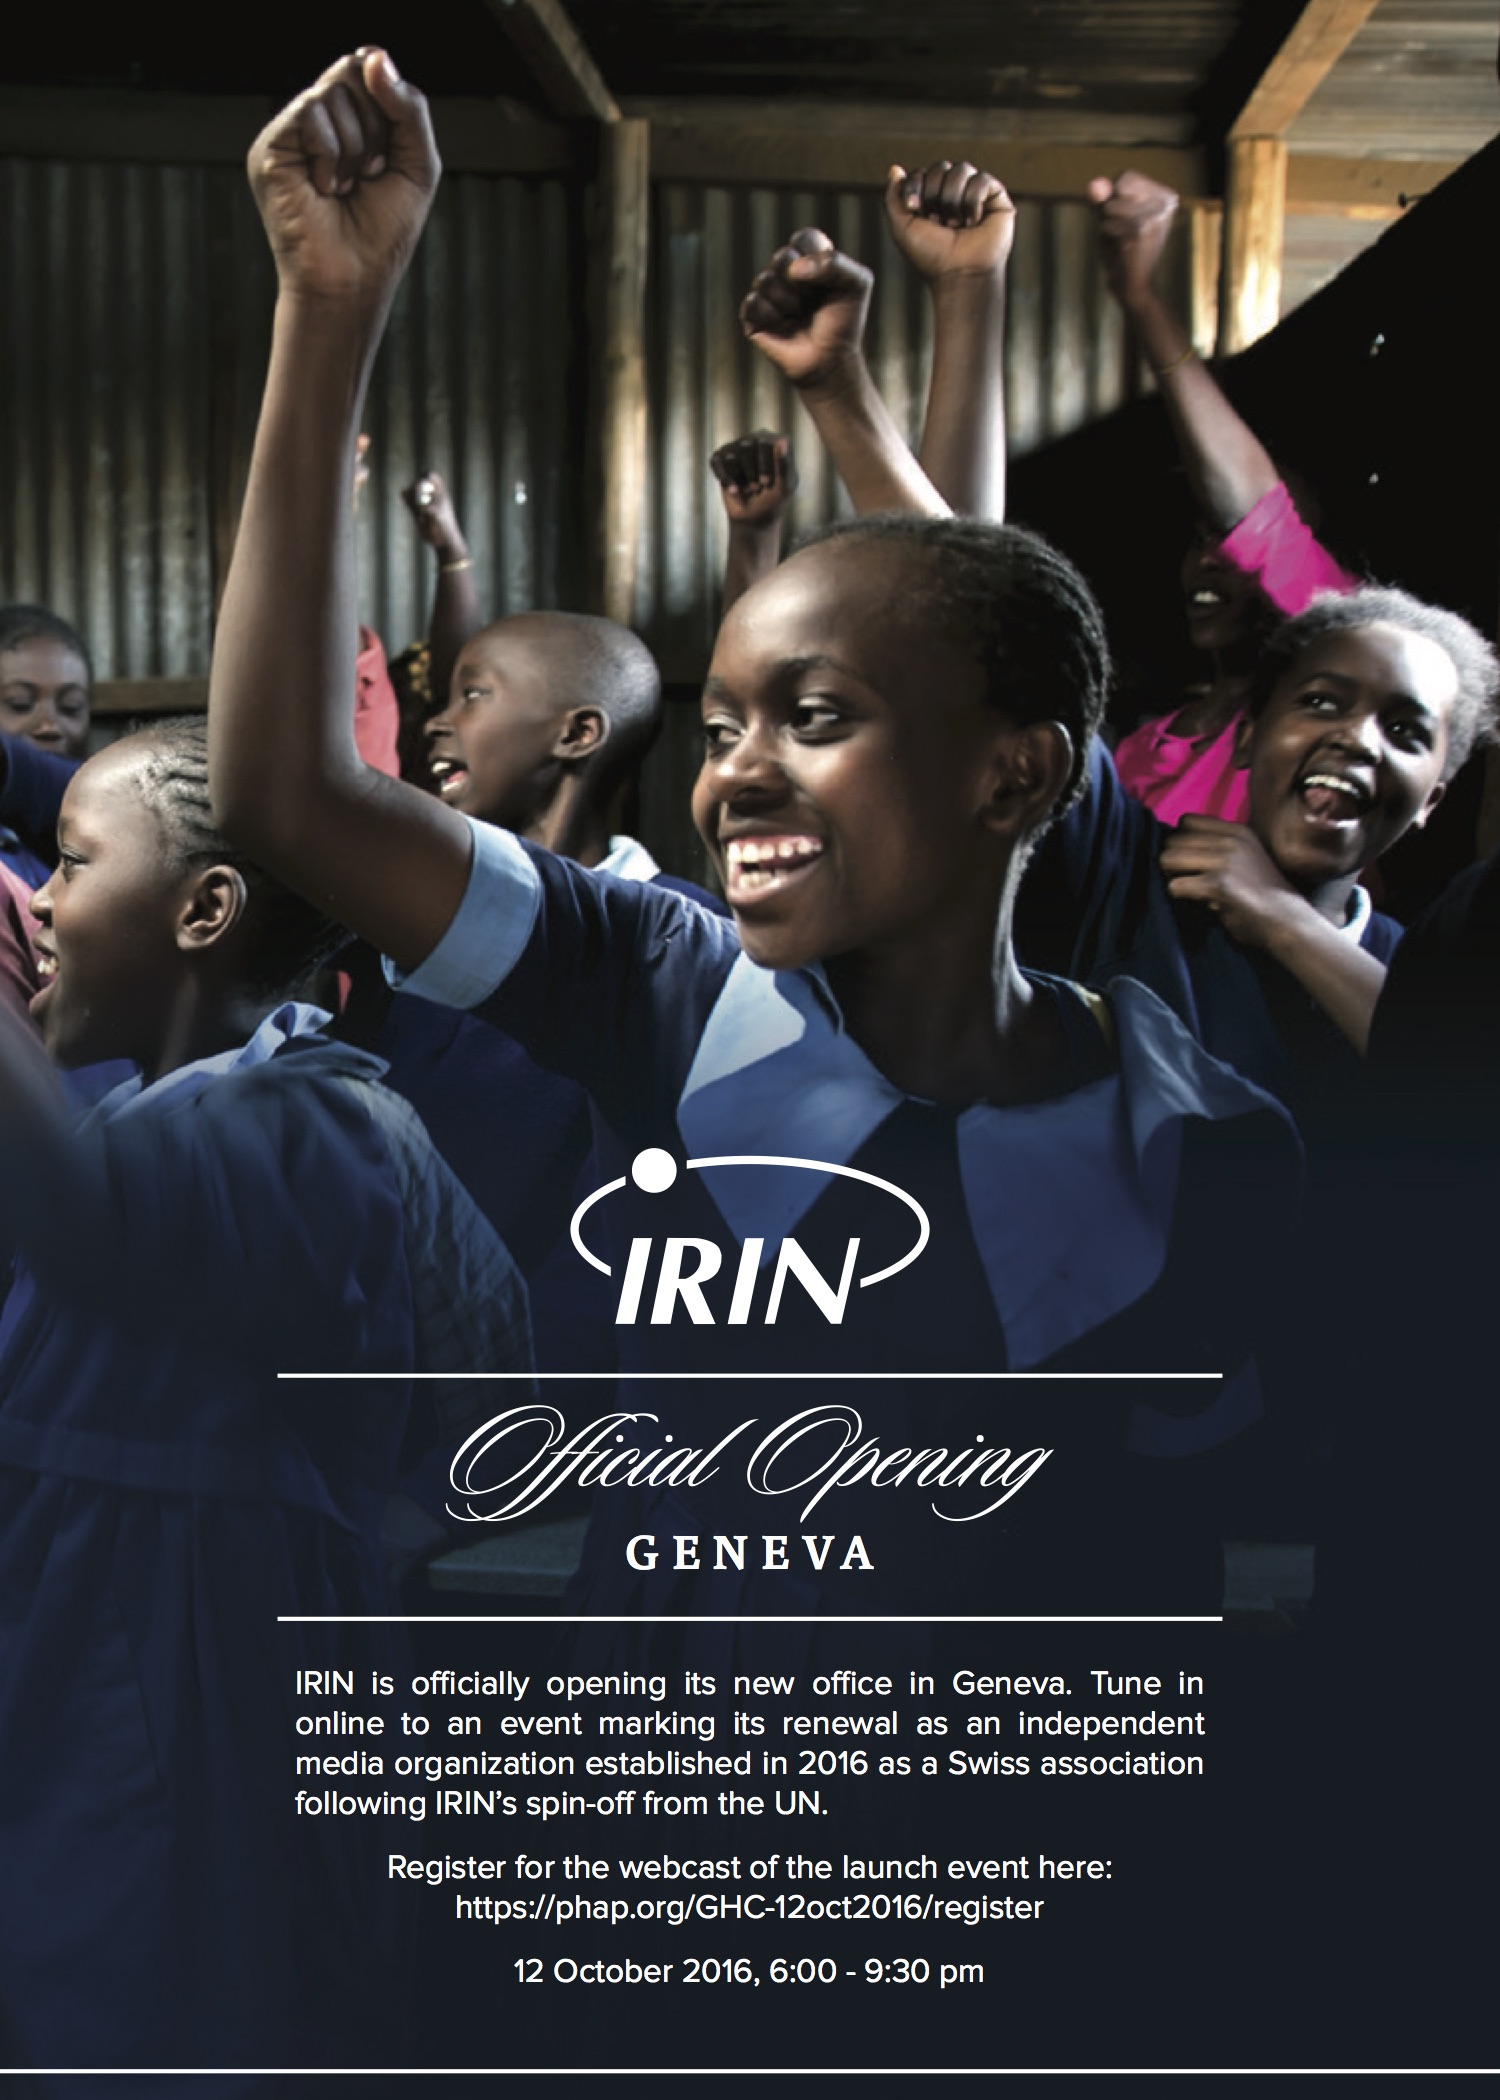 IRIN launch event flyer